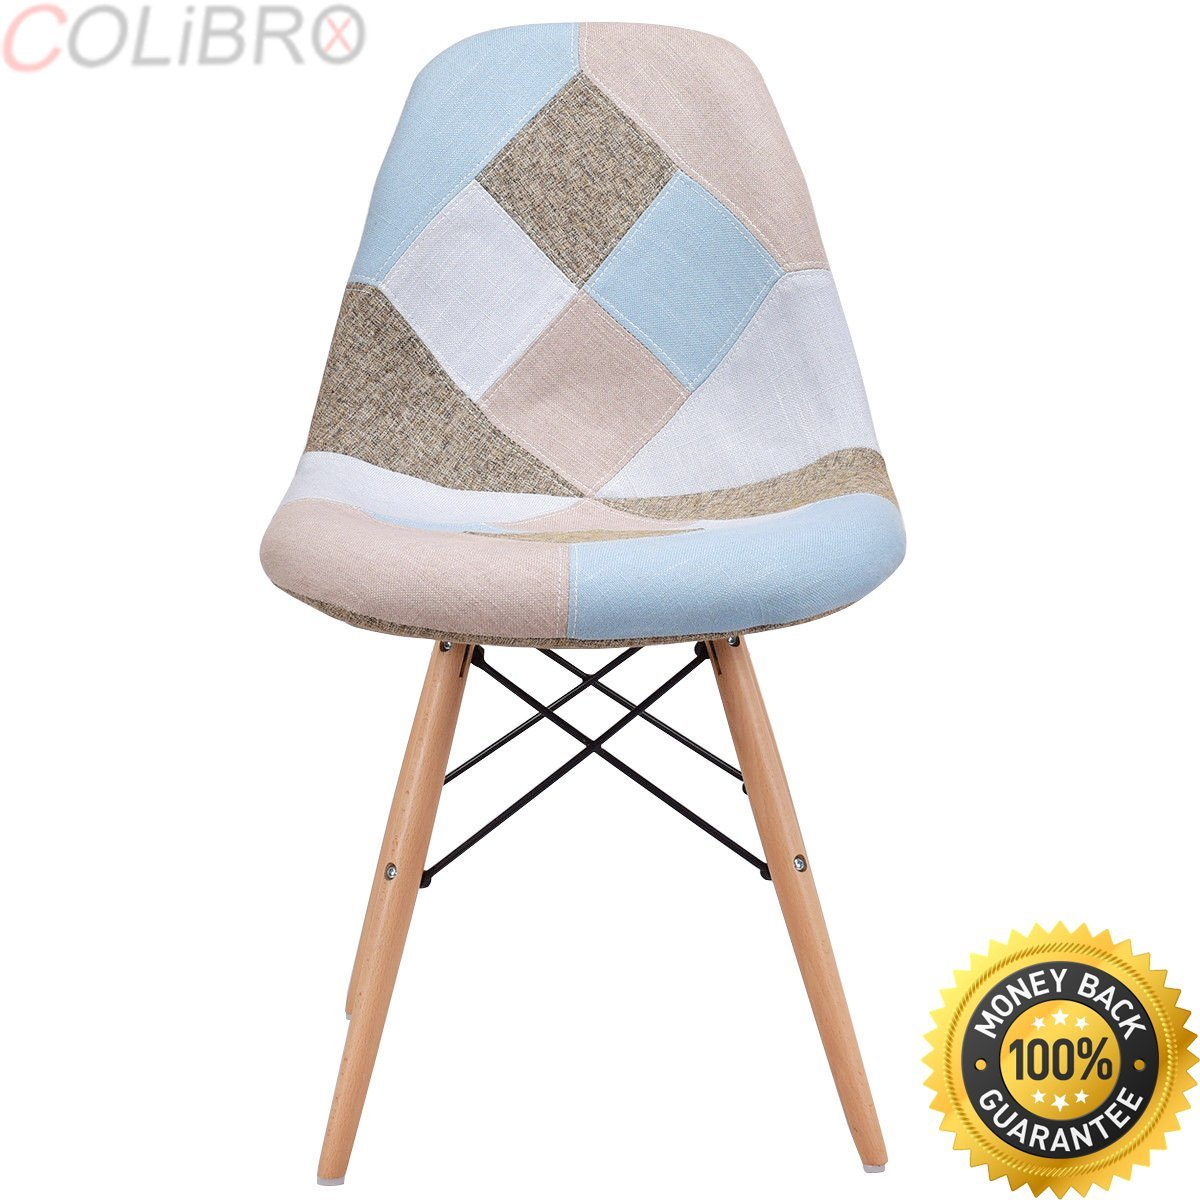 COLIBROX--Set of 2 Dining Side Chair Armless Fabric Upholstered w/ Wood Legs Mid Century. dining room chairs. upholstered dining room chairs. mid century dining chair with wood leg amazon.